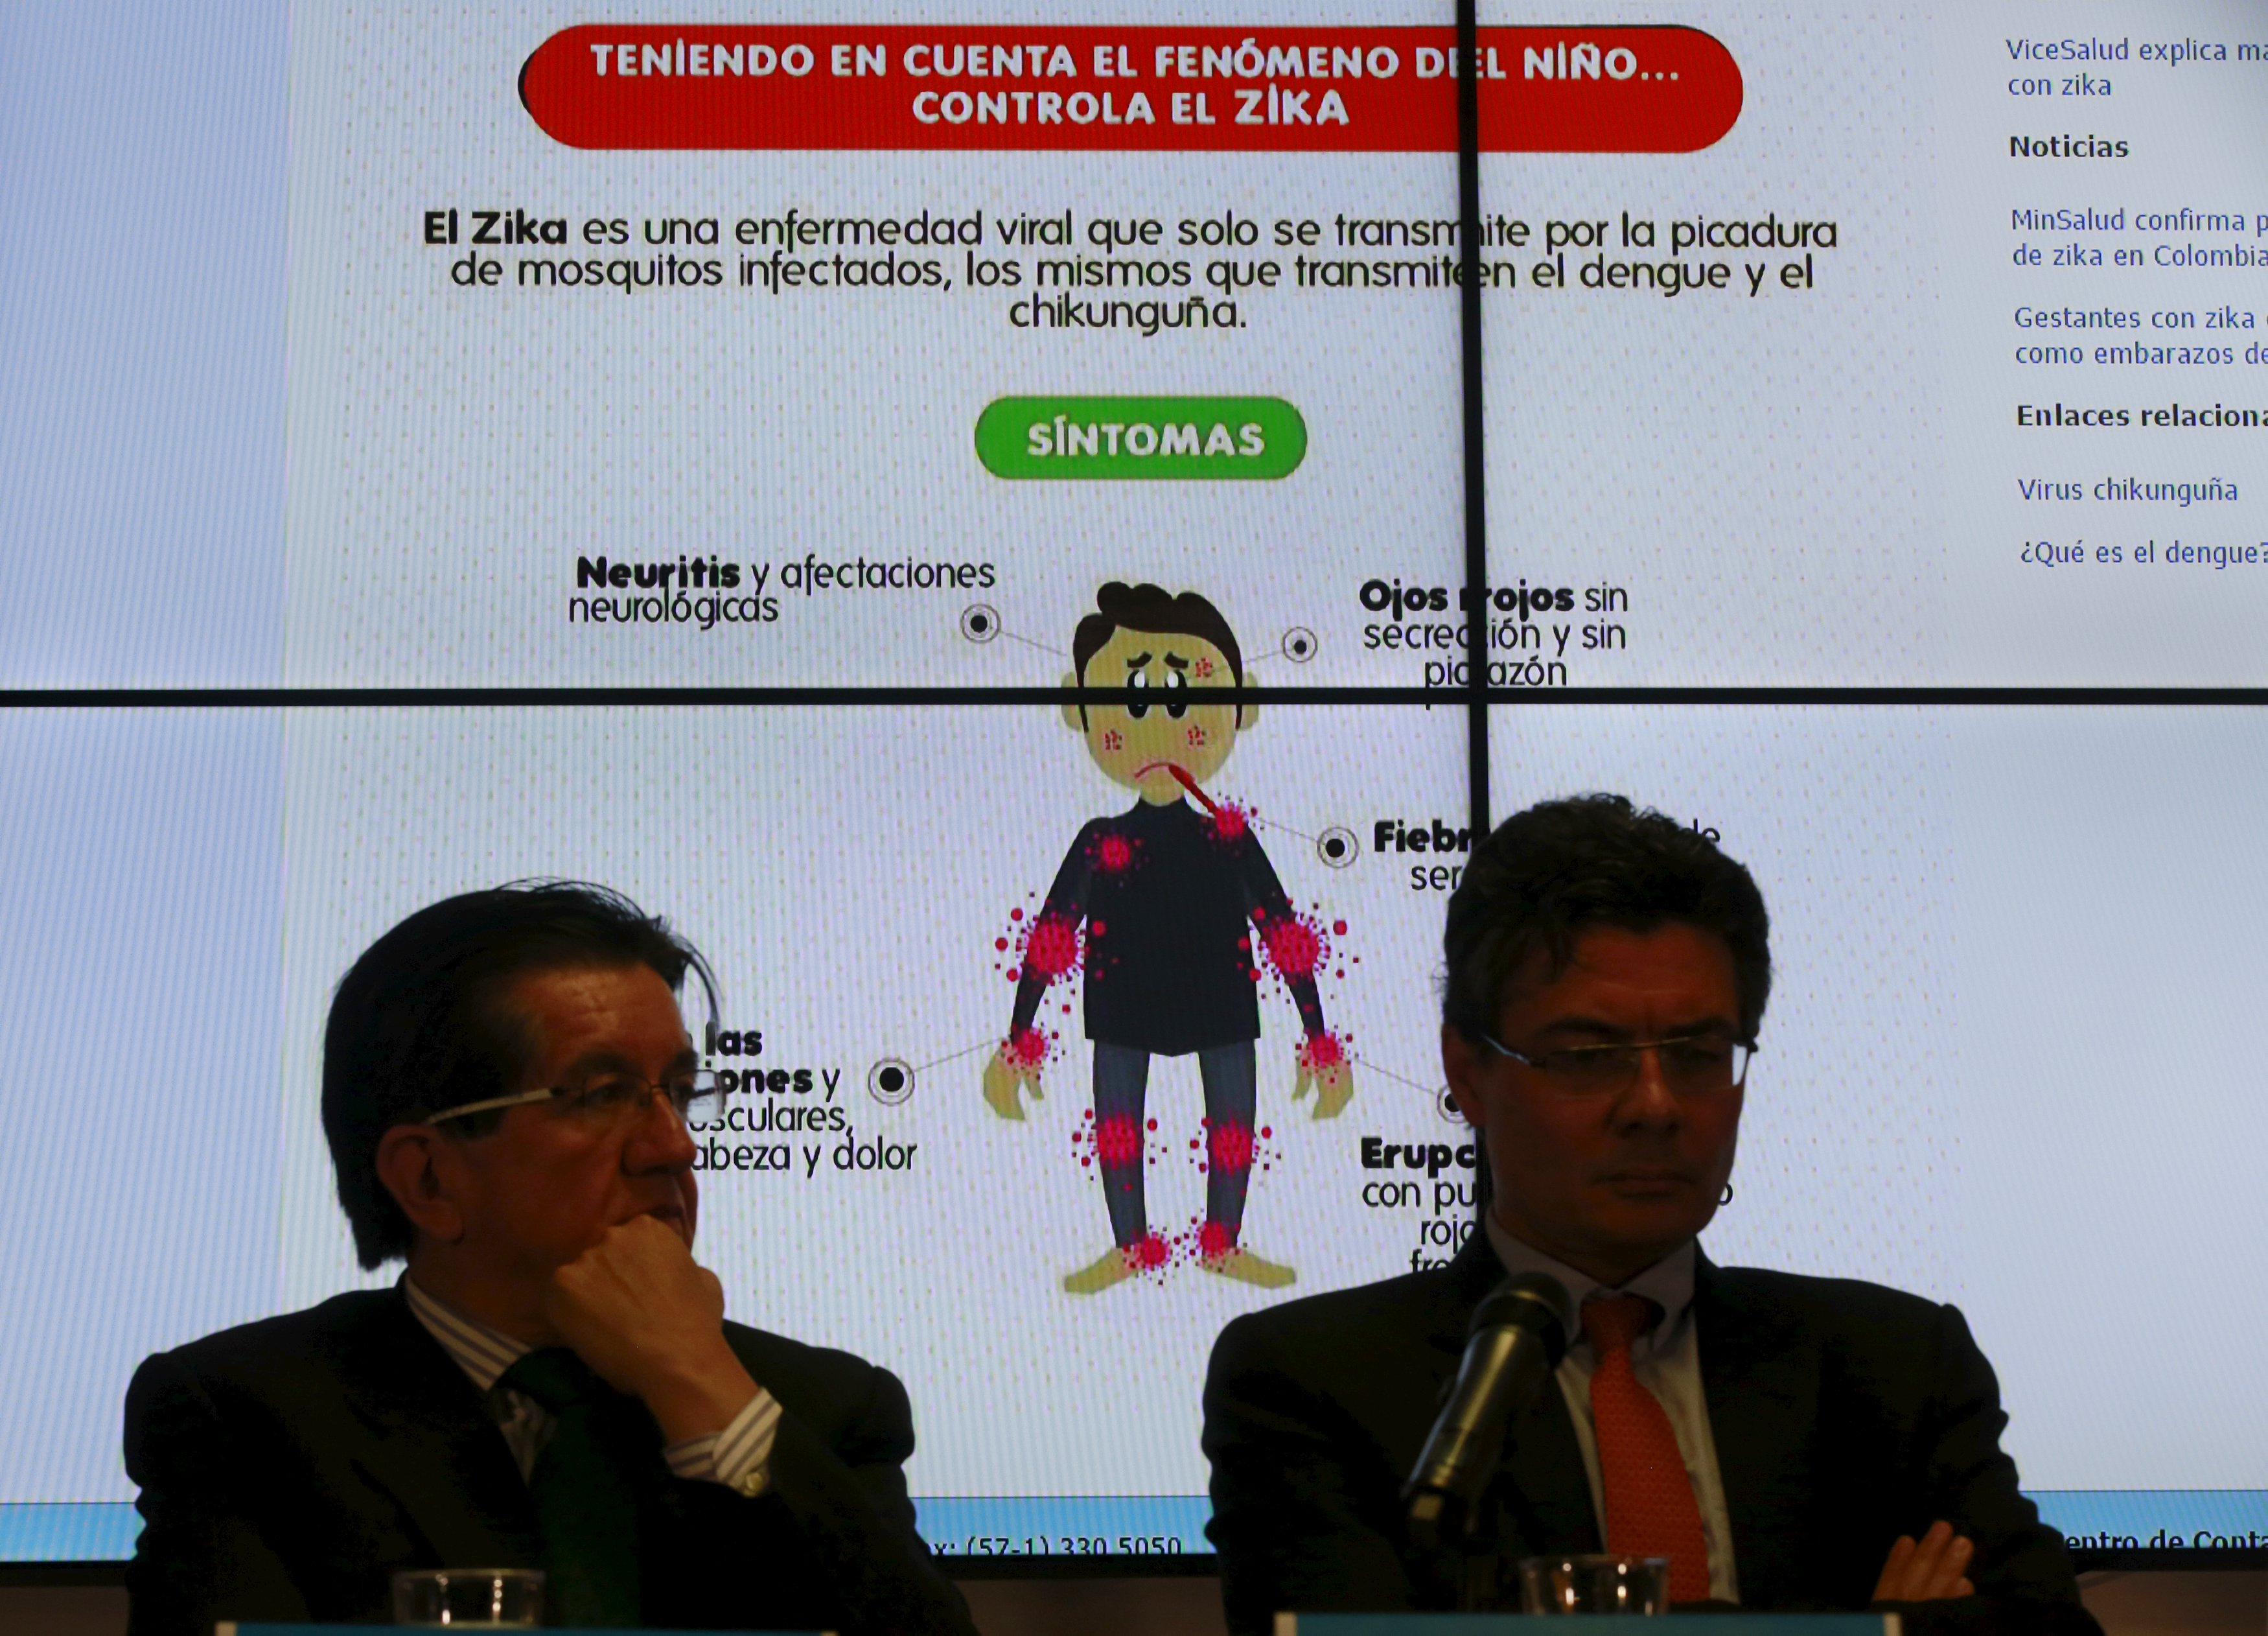 Graph of the symptoms of the Zika virus is seen behind of Colombia's Health Minister Alejandro Gaviria (R) during a news conference on the Zika virus in Bogota, Colombia, January 20, 2016. REUTERS/John Vizcaino